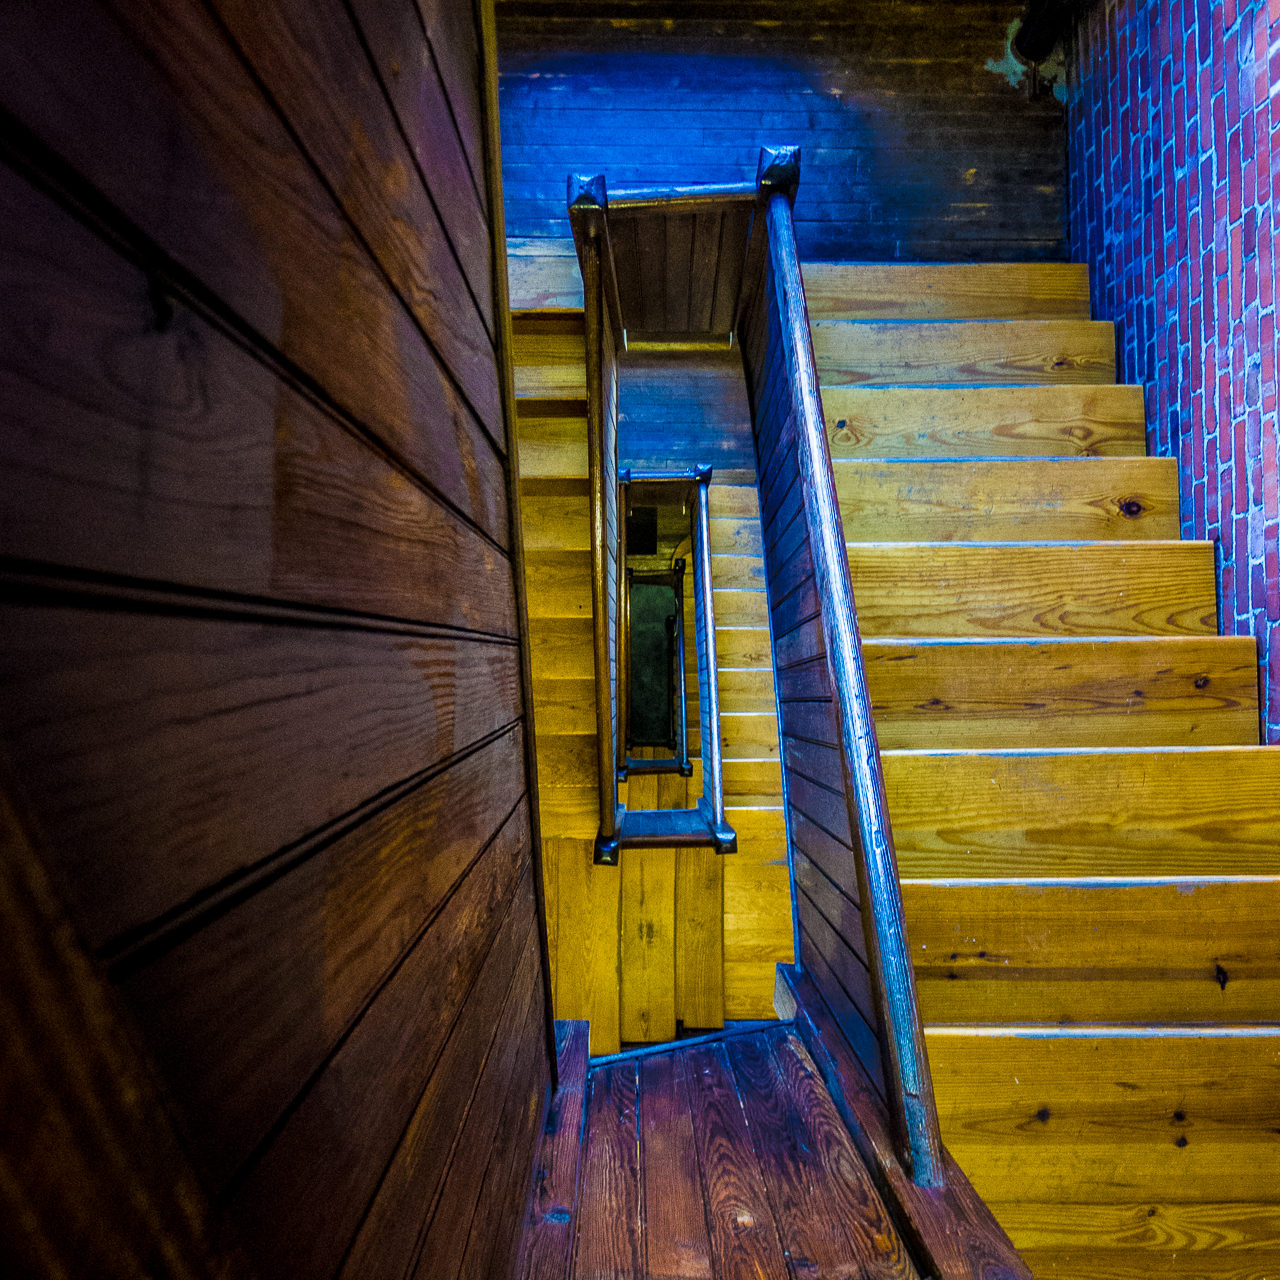 wooden-stairs-1020868